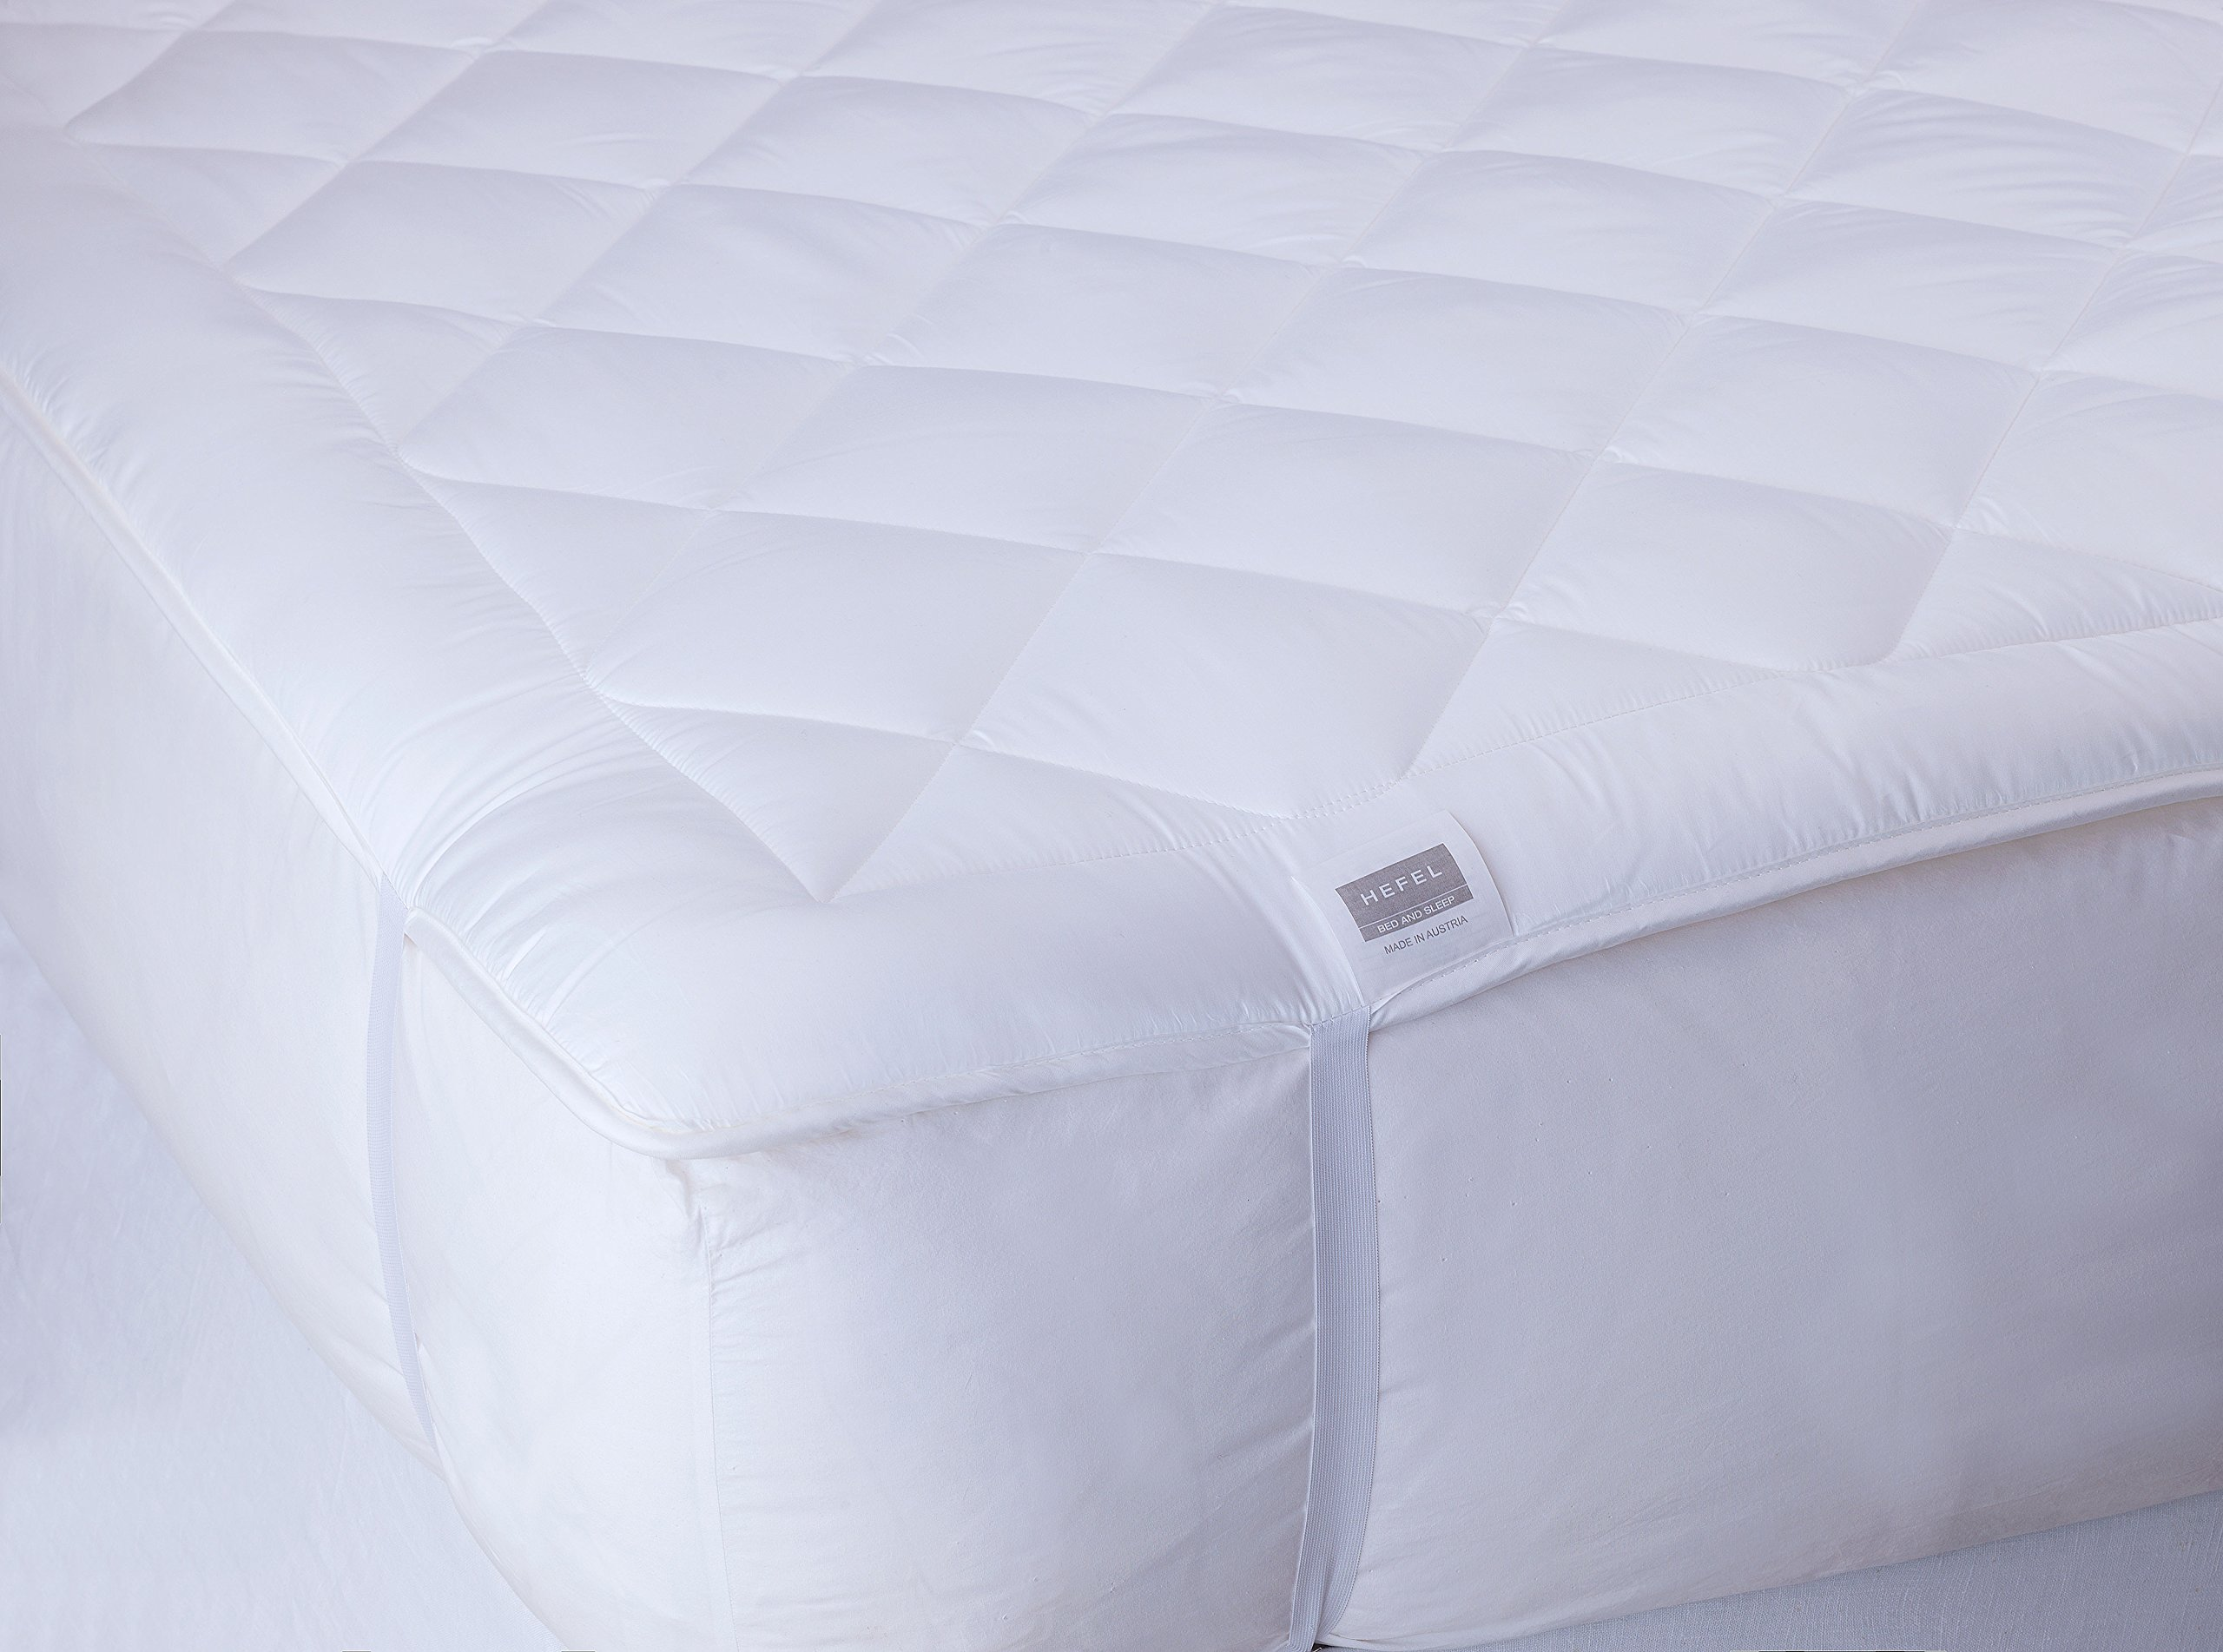 Hefel 1669P Clima Mattress Protector, Queen by Hefel (Image #1)